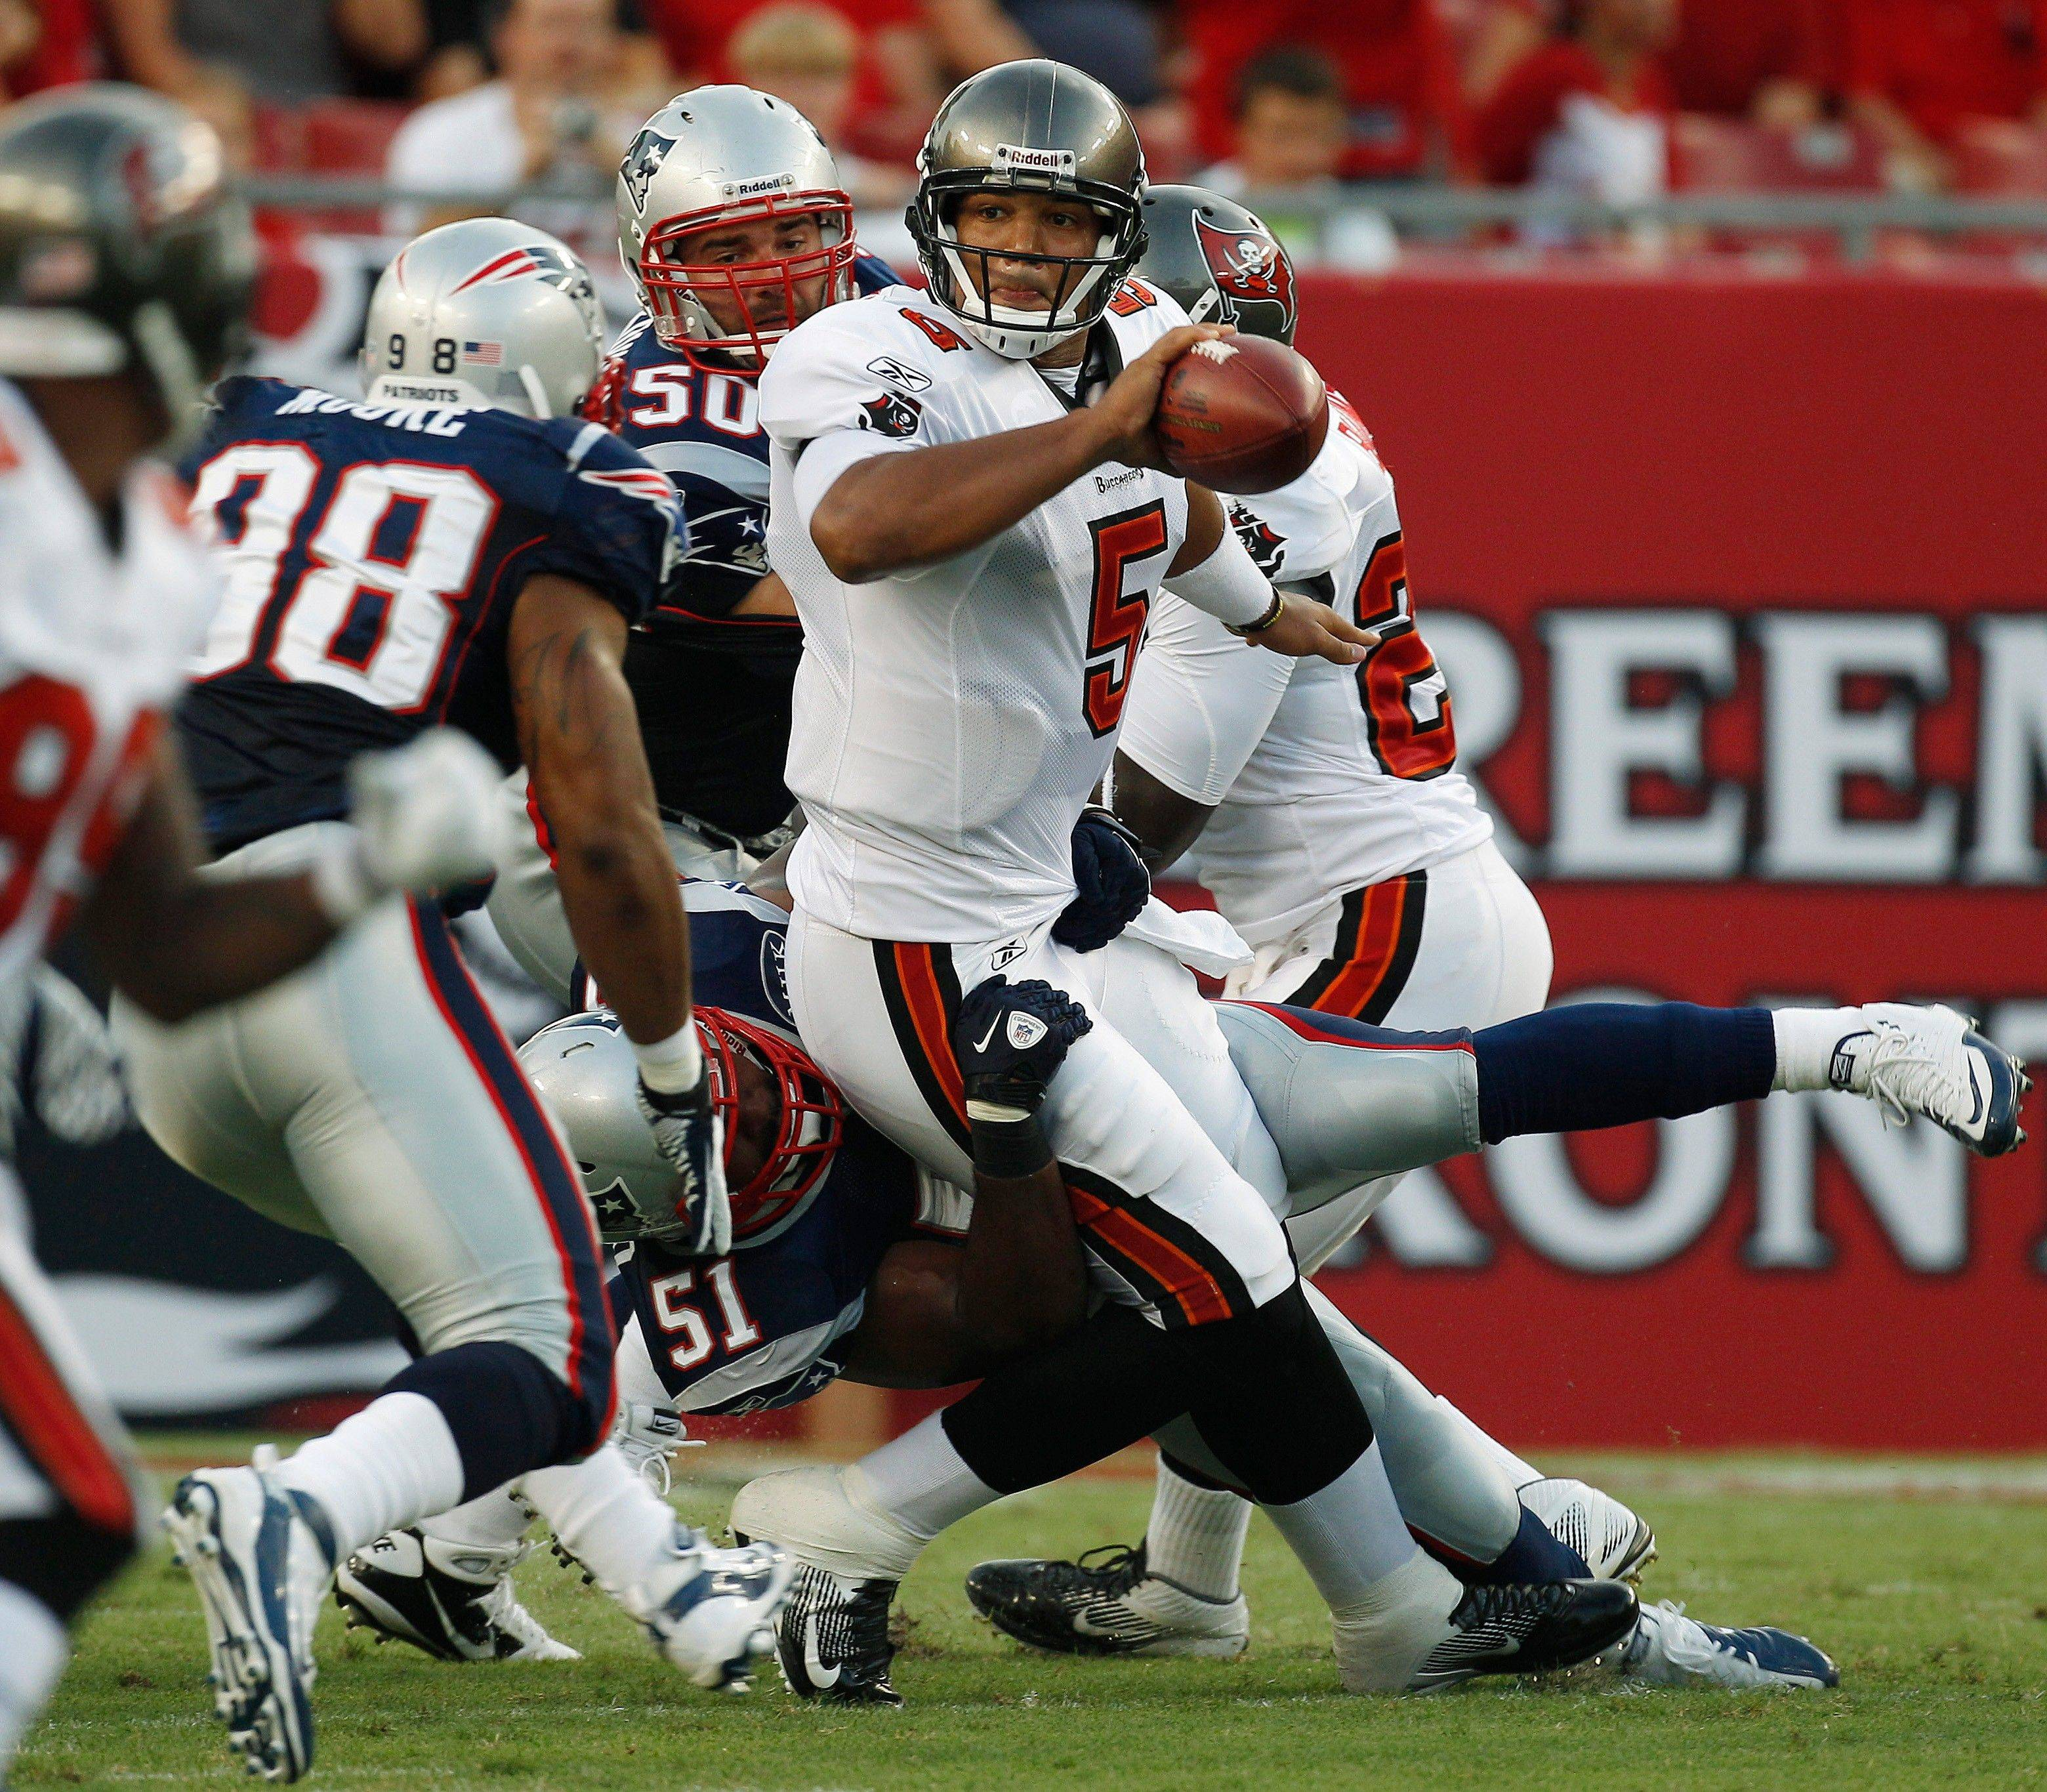 Only Aaron Rodgers and Michael Vick had more rushing yards among quarterbacks than Tampa Bay's Josh Freeman (above).